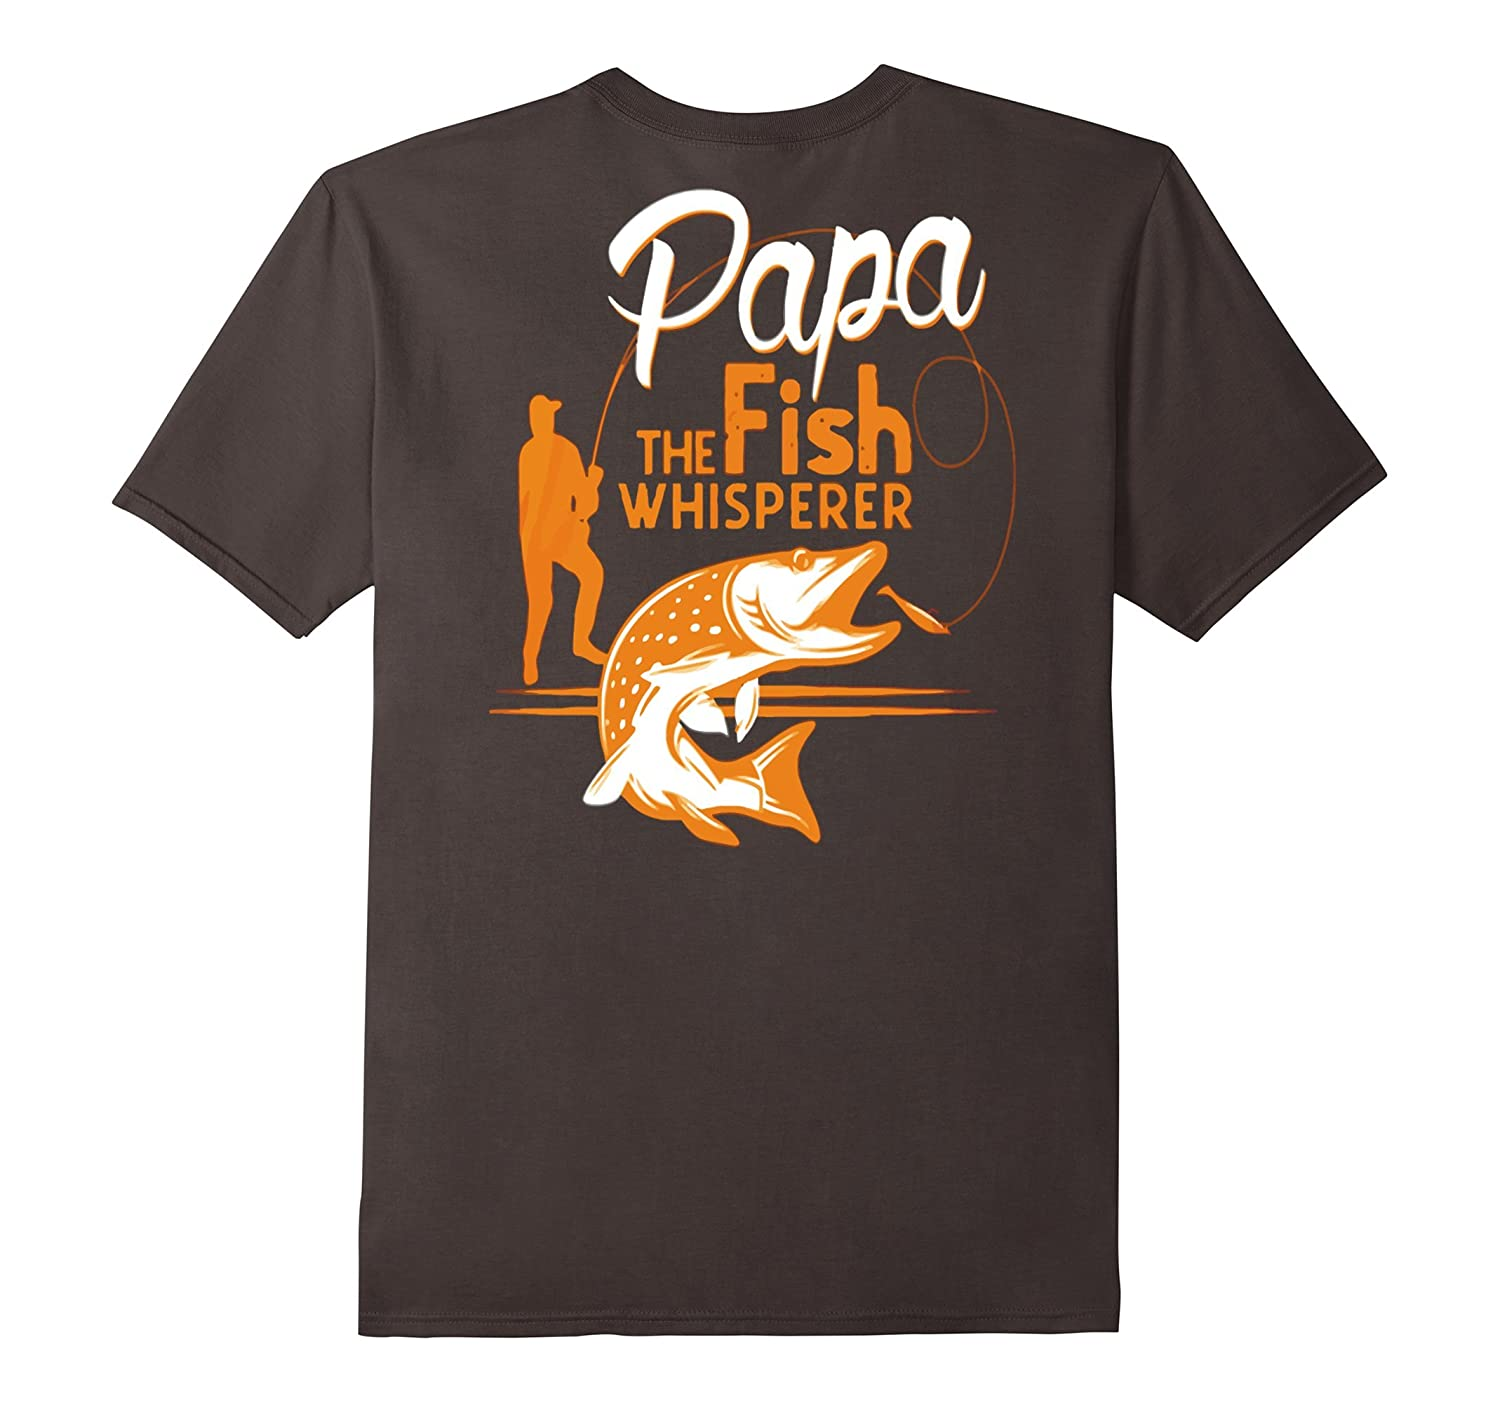 papa the fish whisperer t shirt goatstee. Black Bedroom Furniture Sets. Home Design Ideas